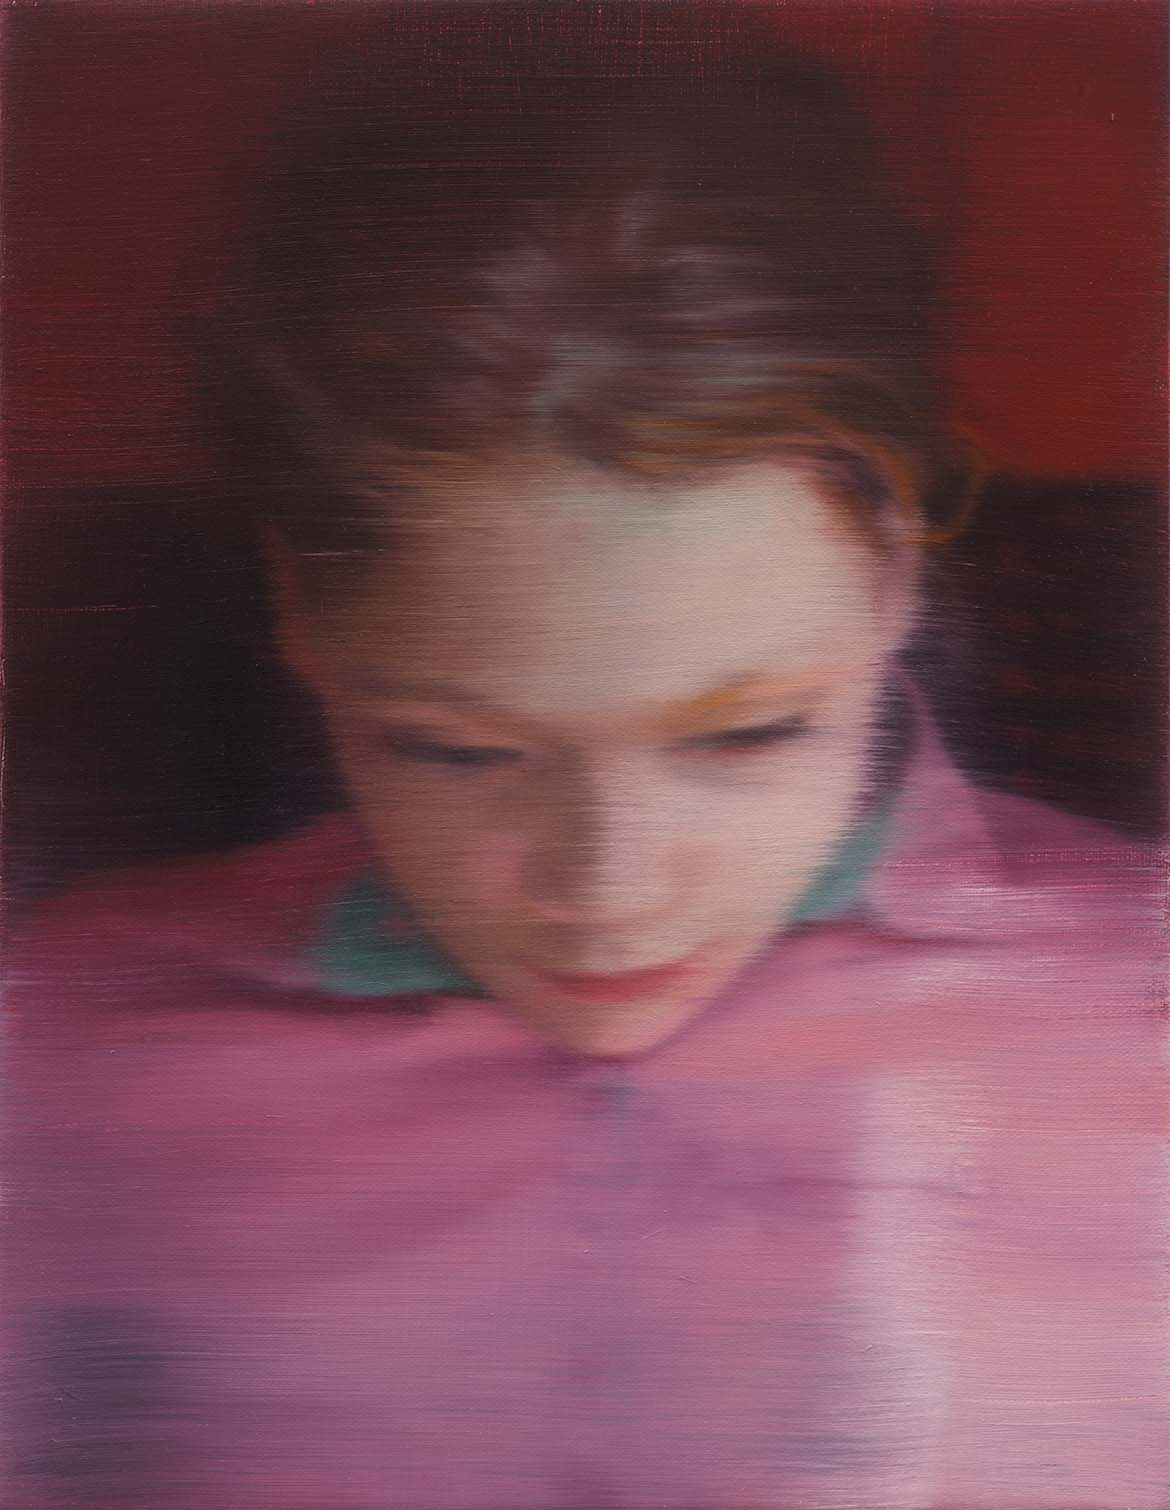 Gerhard Richter, Germany b.1932 / Ella (903-1) 2007 / Oil on canvas / Private Collection / © Gerhard Richter 2017